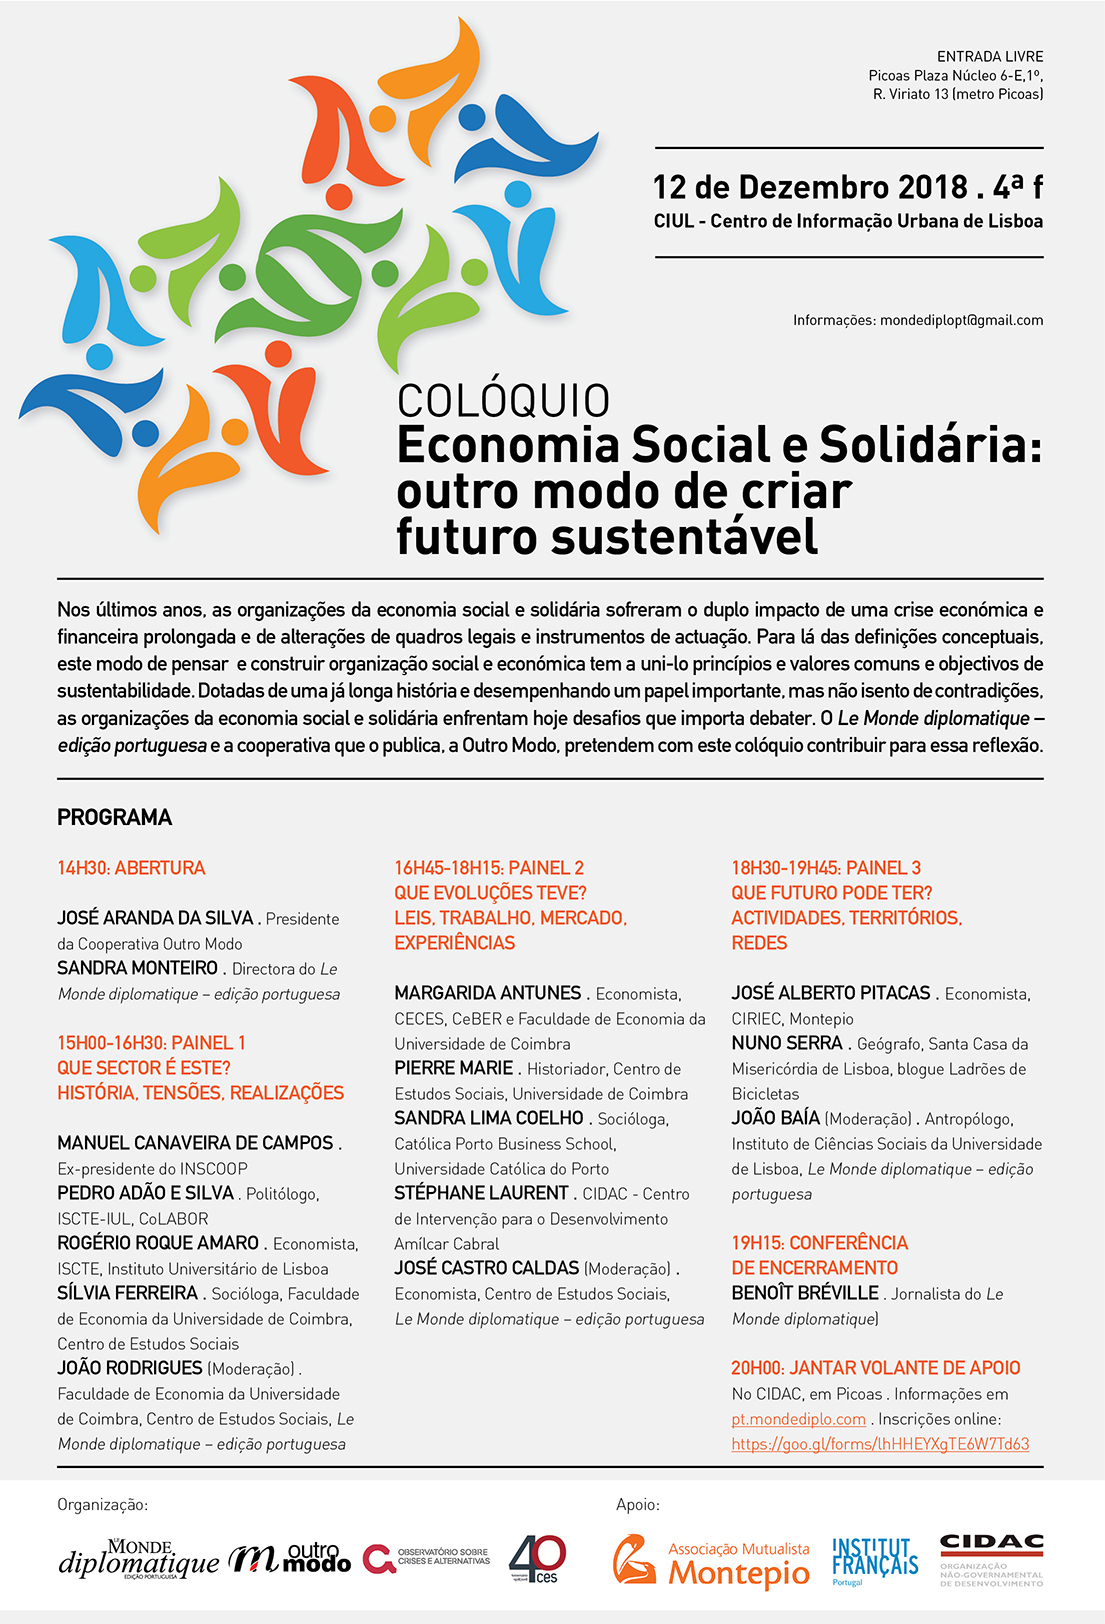 "Social and Solidarity Economy: another way to create a sustainable future<span id=""edit_21464""><script>$(function() { $('#edit_21464').load( ""/myces/user/editobj.php?tipo=evento&id=21464"" ); });</script></span>"